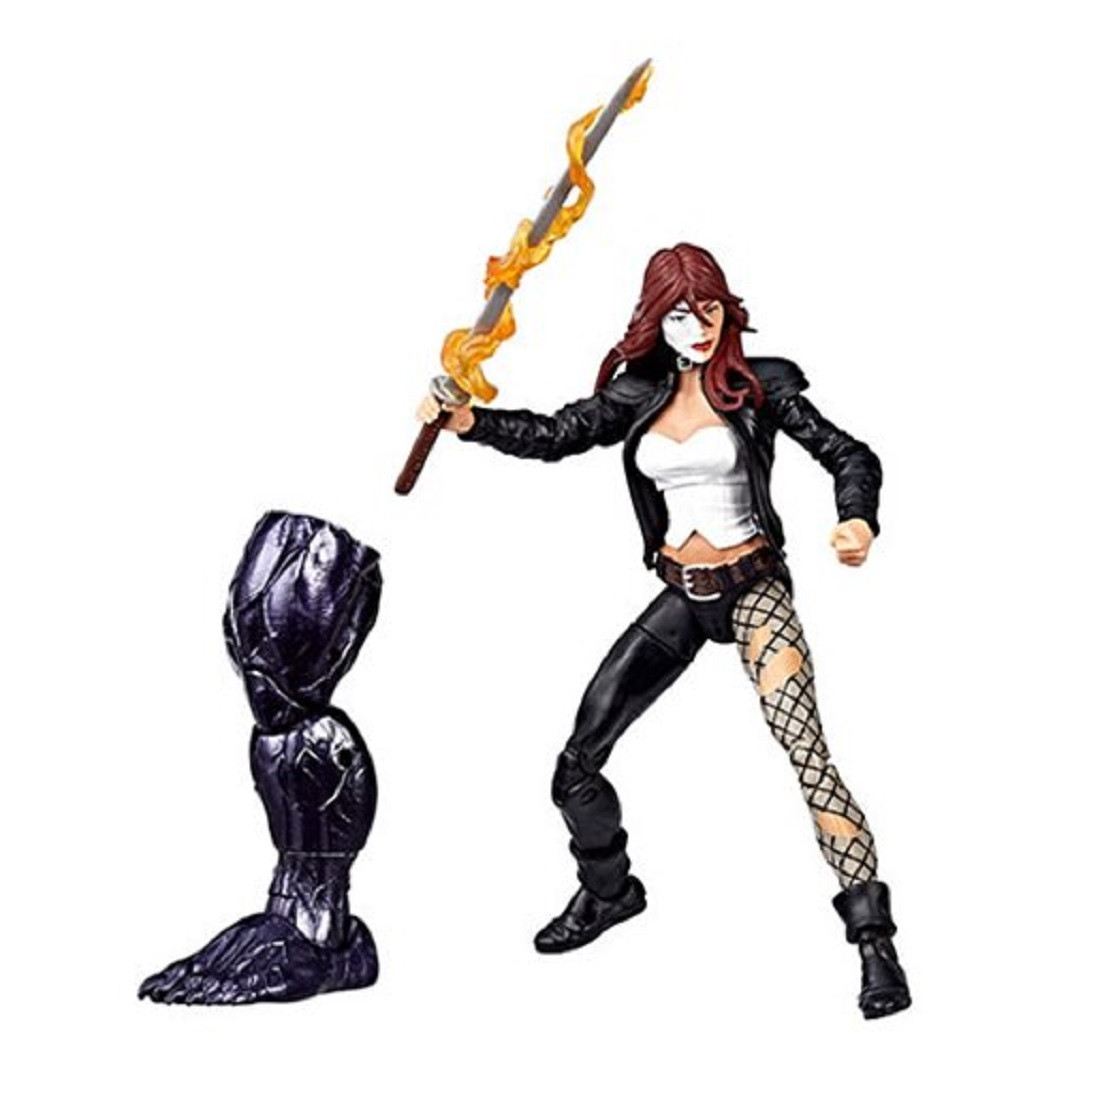 Action Figure Toy - Venom Marvel Legends - Typhoid Mary - 6 Inch - Wave 1